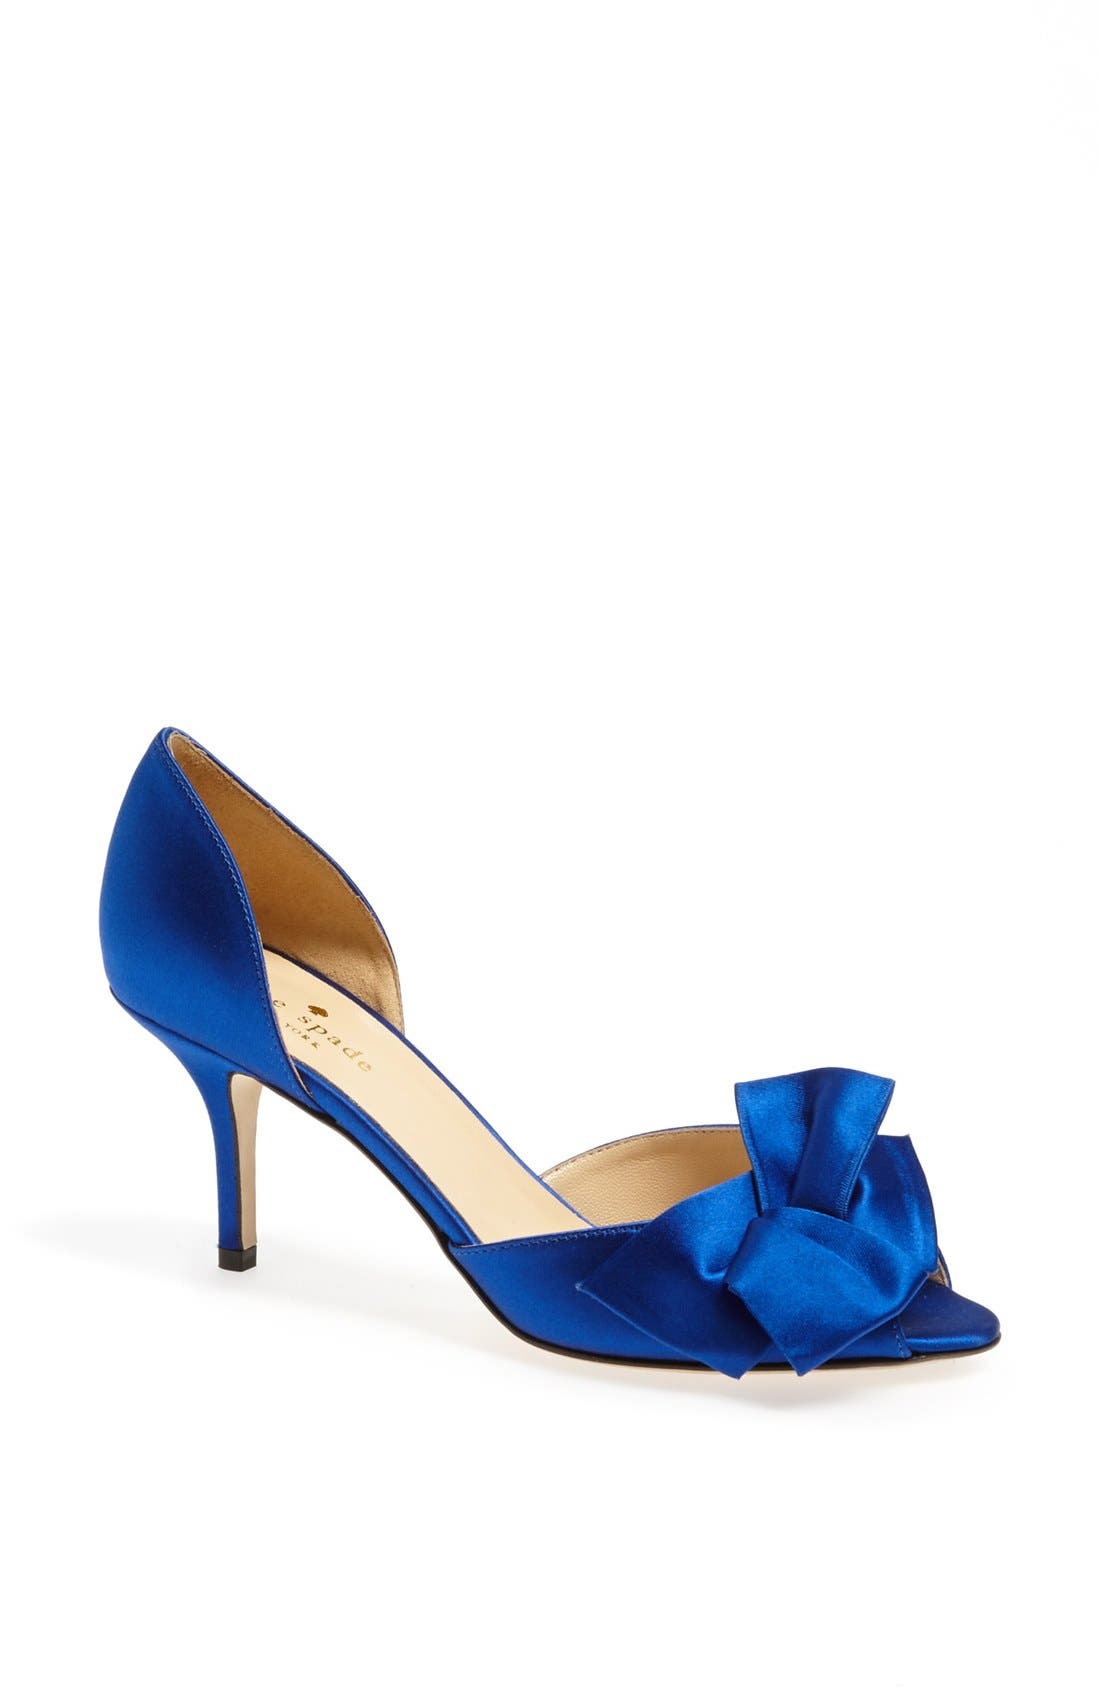 Main Image - kate spade new york 'sala' pump (Women)